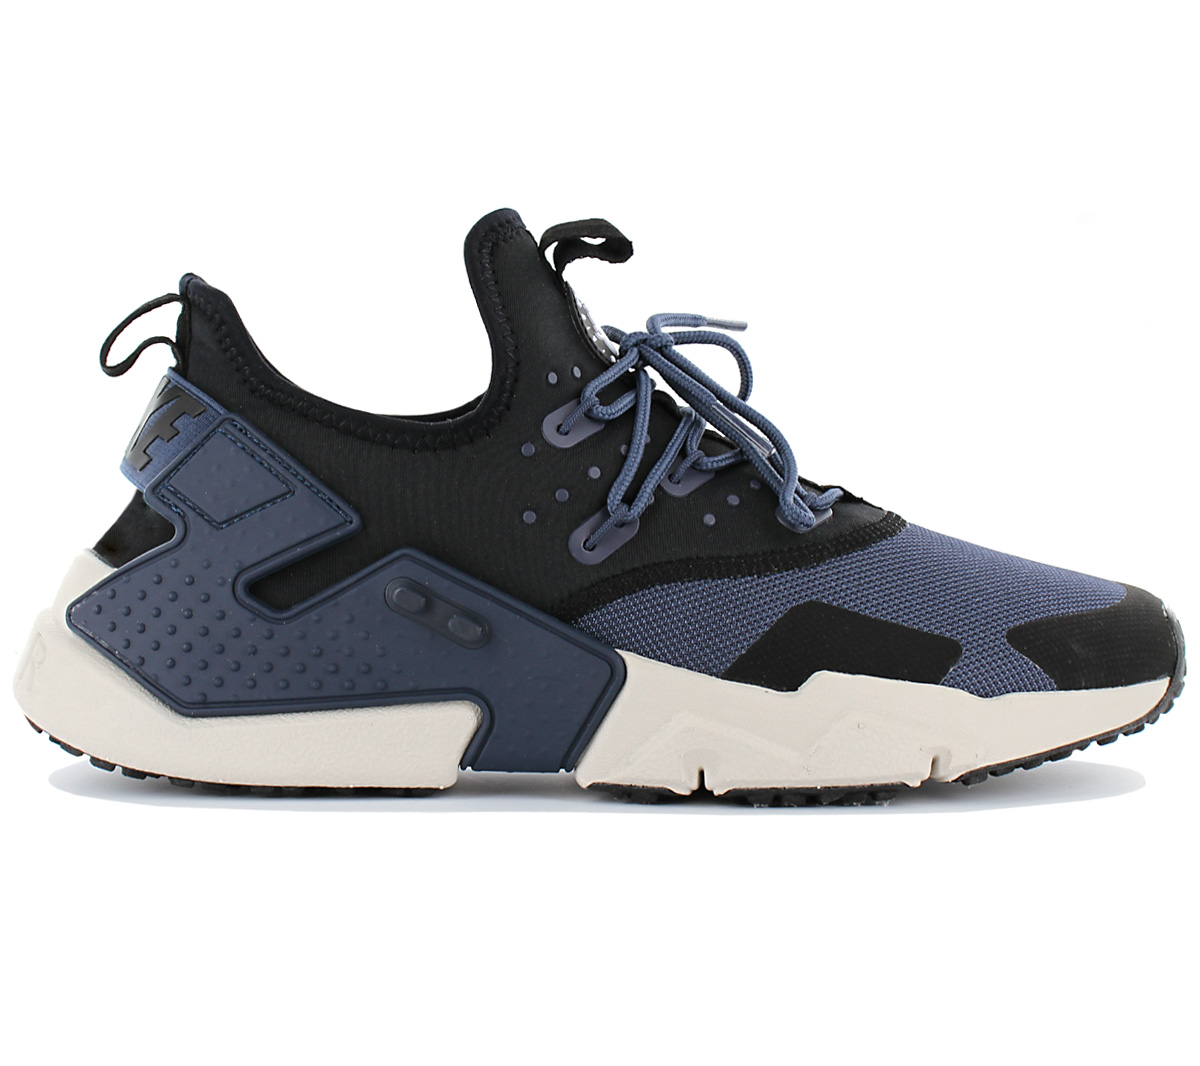 afbfa317ab Nike Air Huarache Drift Men's Sneakers Shoes Blue Leisure Shoe ...